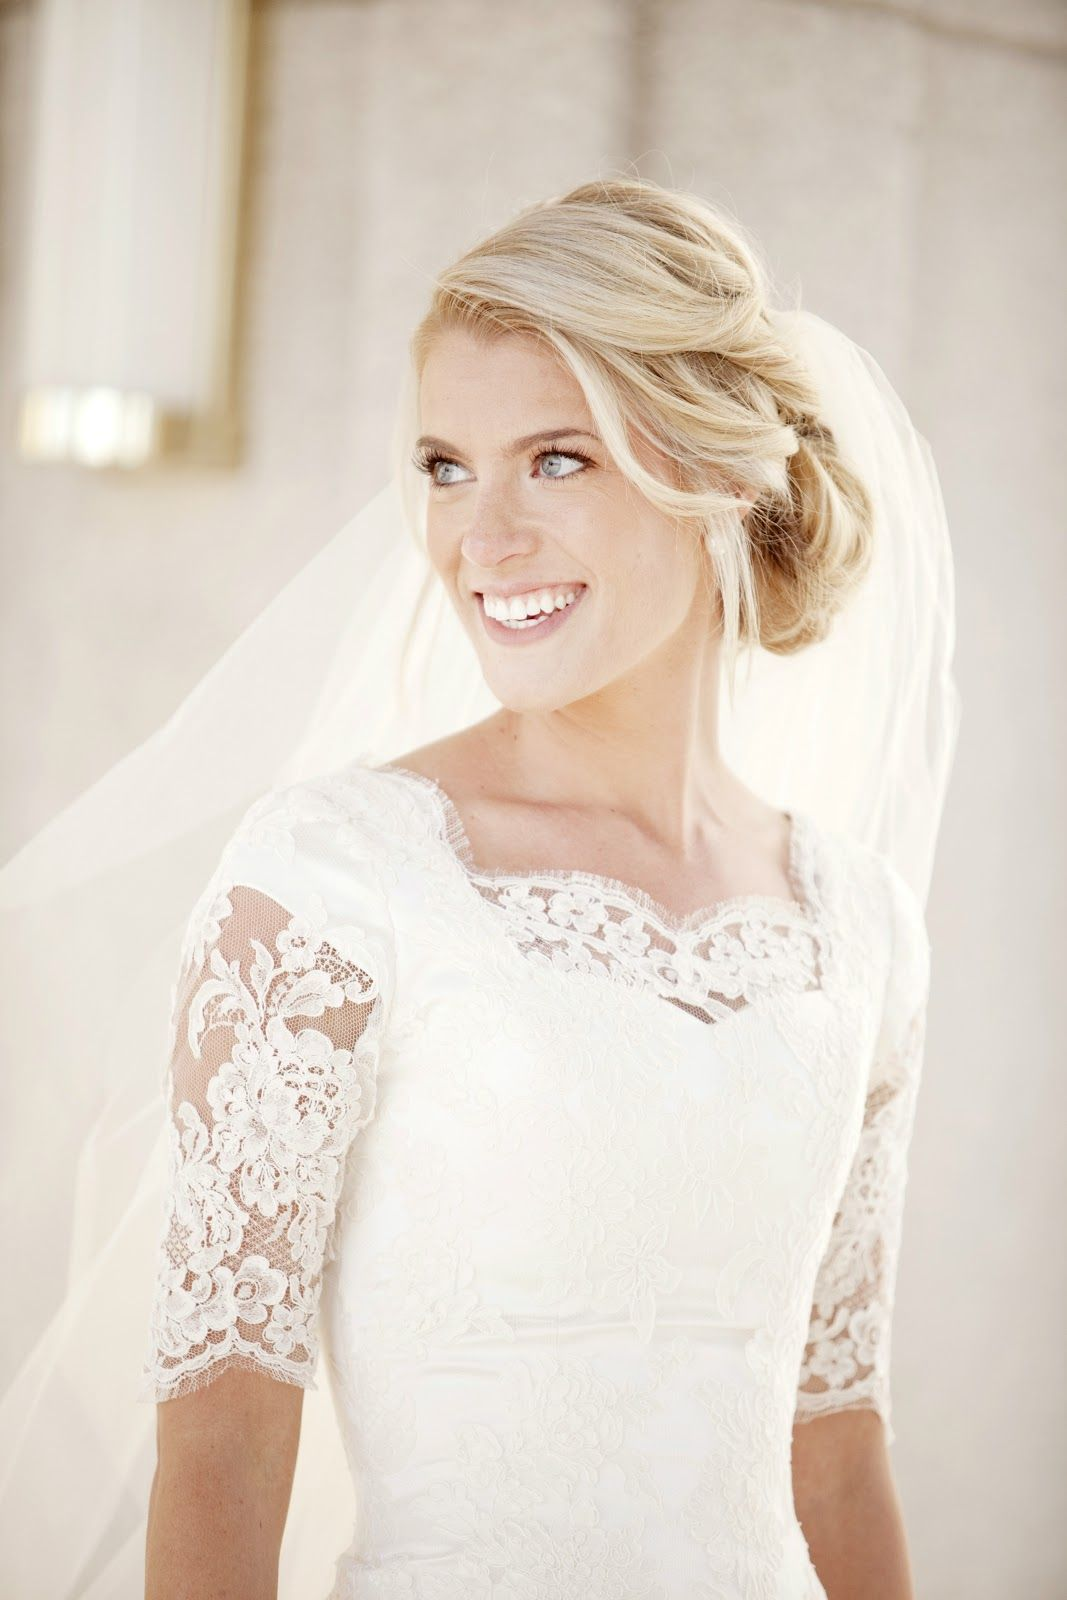 modest wedding dress Alta Moda bride Kate in a modest lace wedding dress with elbow sleeves Image by